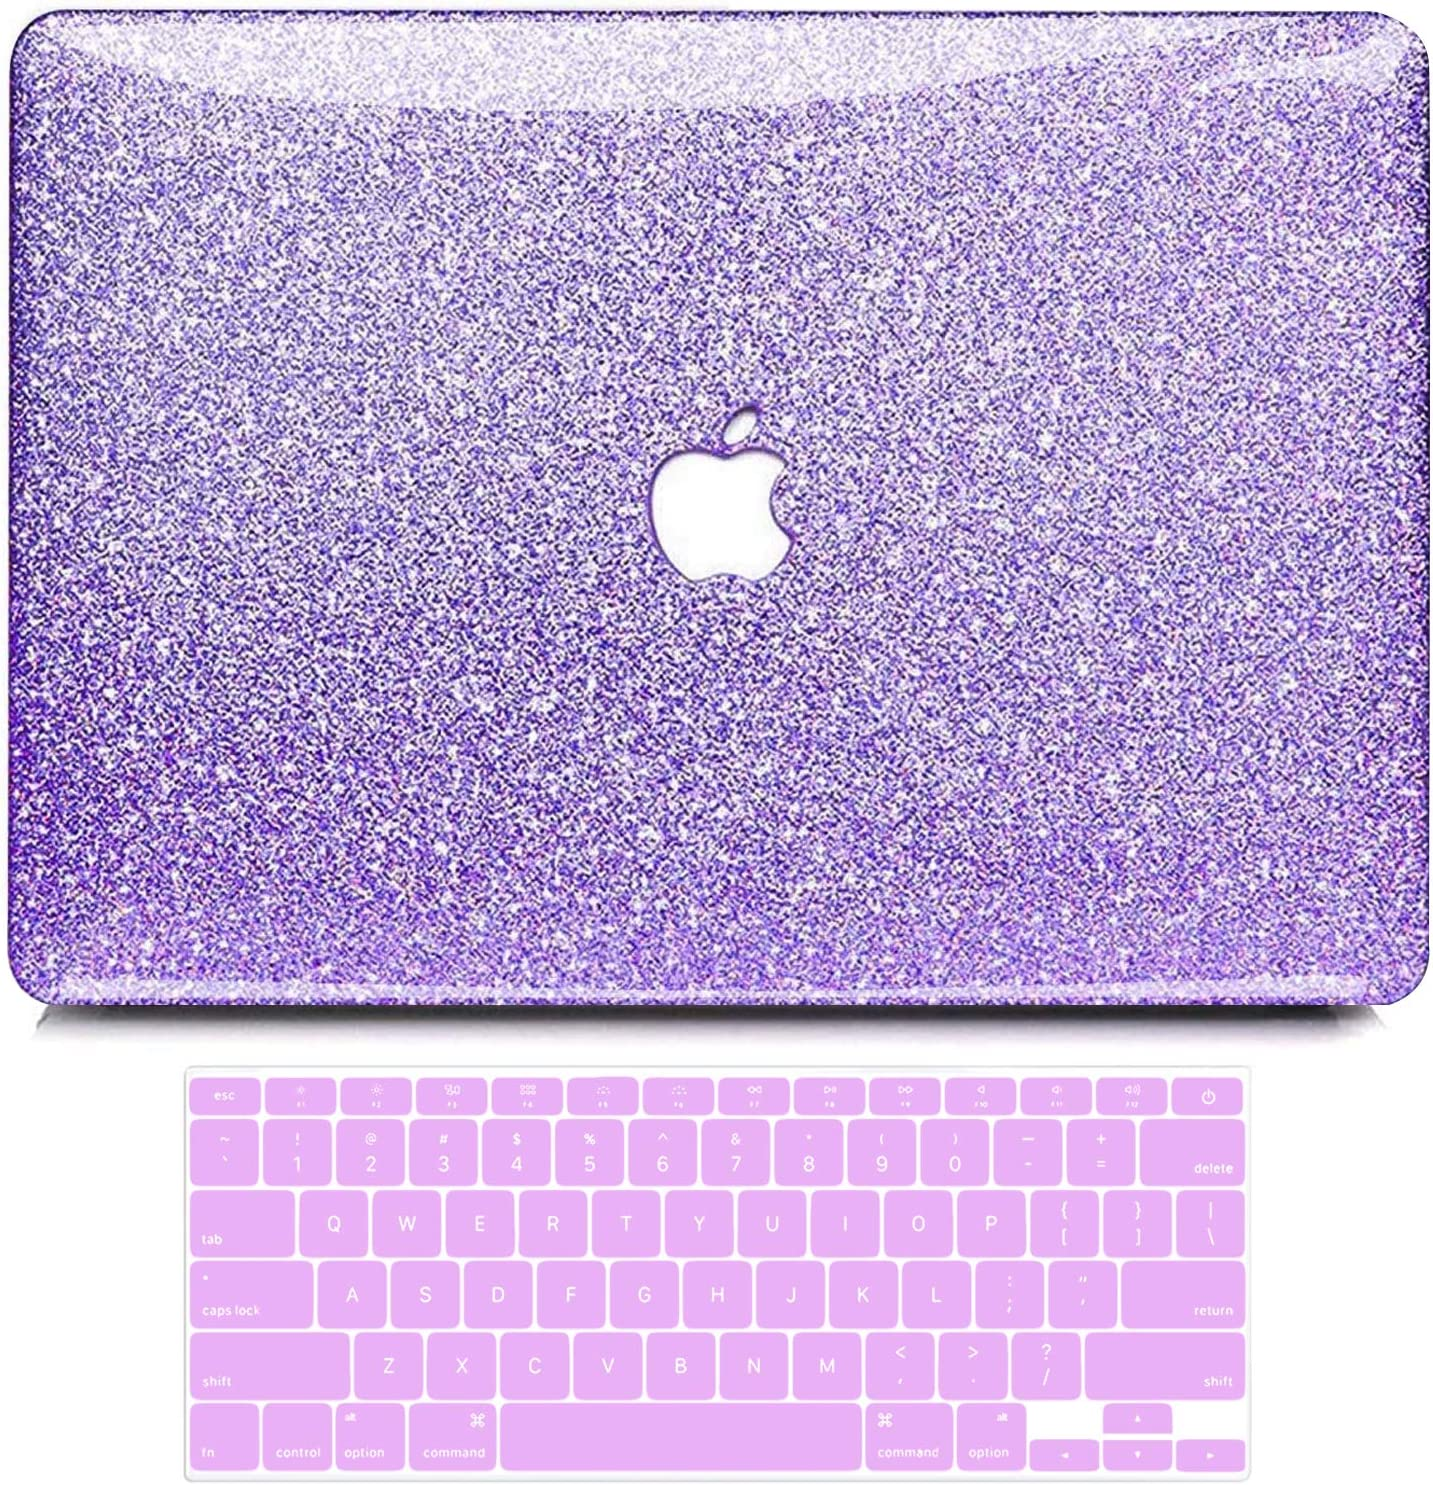 B BELK MacBook Air 13 Inch Case 2010-2017 Release Older Version A1466 A1369 Shining Sparkly Crystal Glossy Ultra Slim PC Hard Case with Keyboard Cover for Mac Air 13 Without Touch ID, Purple